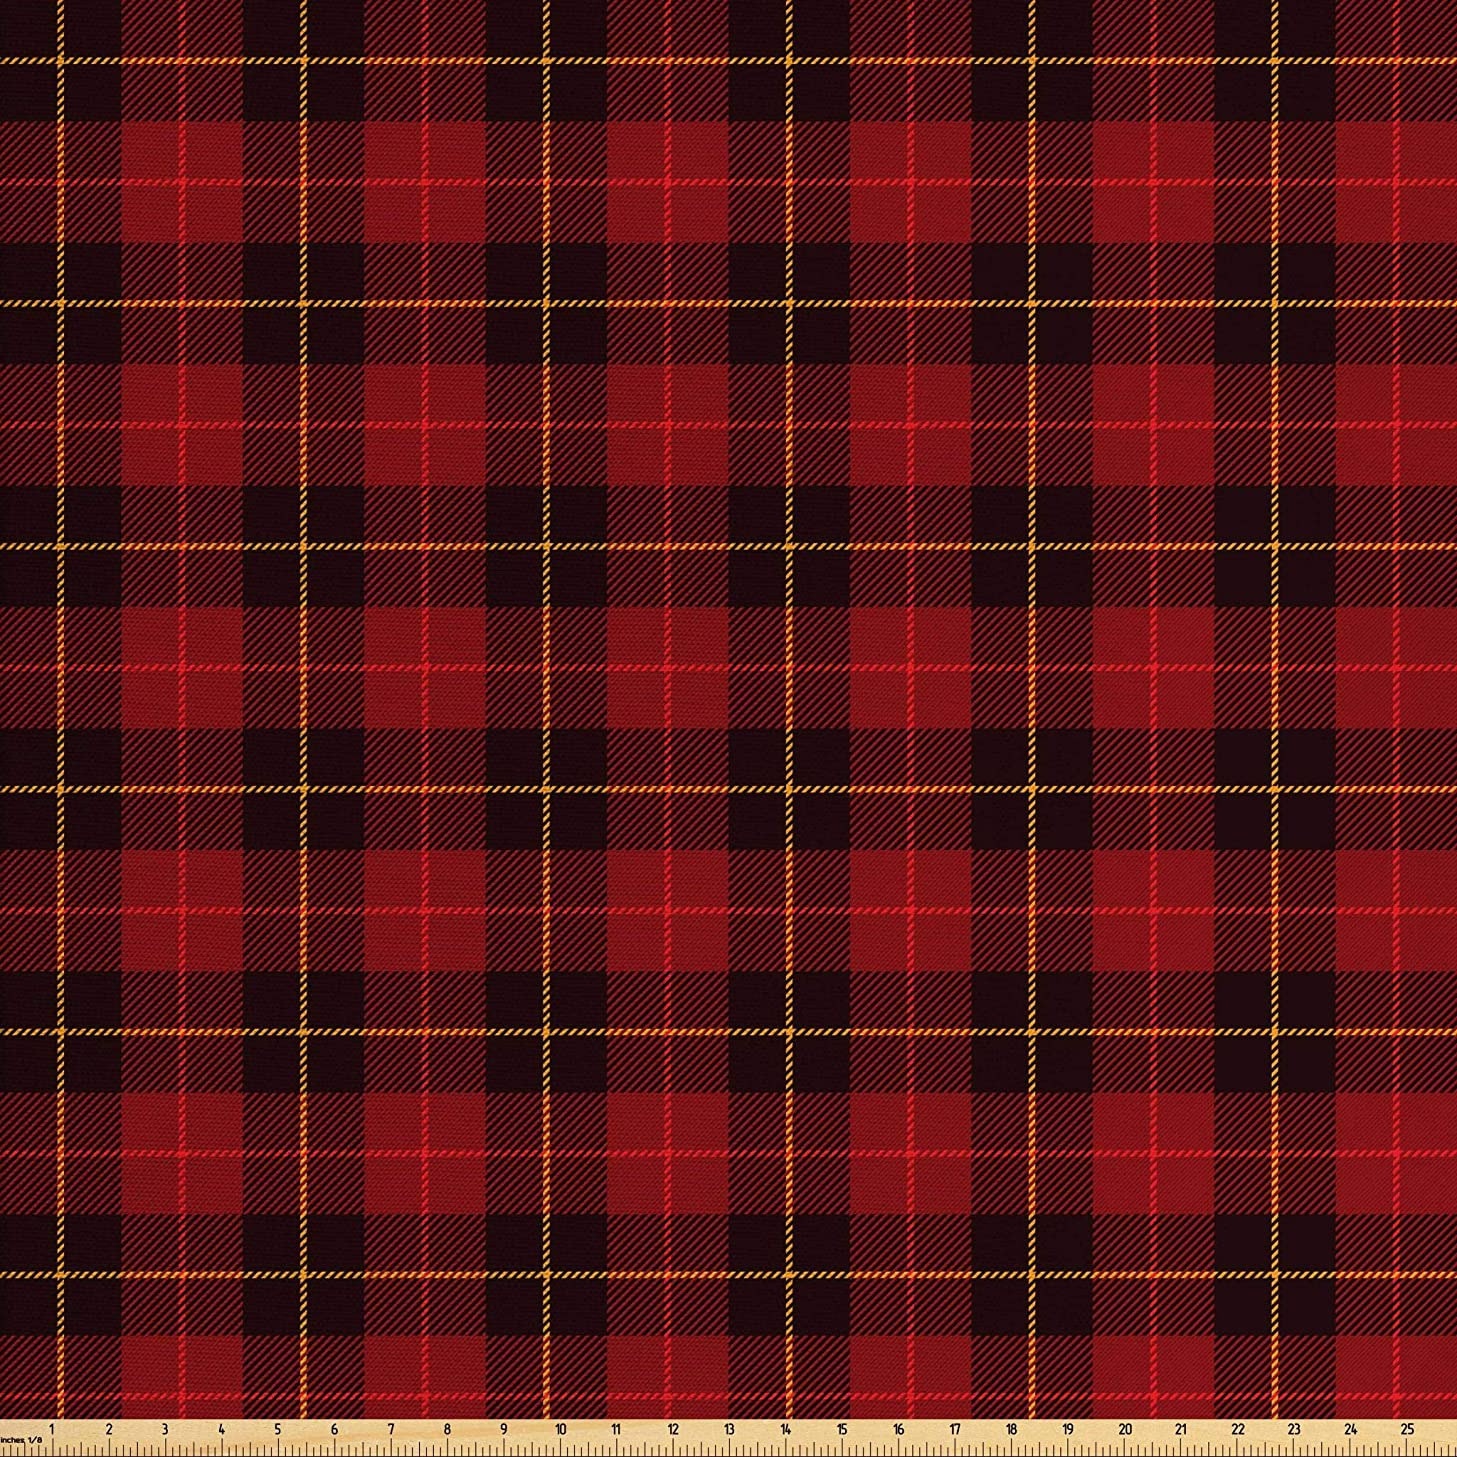 Lunarable Plaid Fabric by The Yard, Ancient Scottish Tartan with Traditional Colors Vintage Country Style, Decorative Fabric for Upholstery and Home Accents, 1 Yard, Ruby Mustard Dark Brown